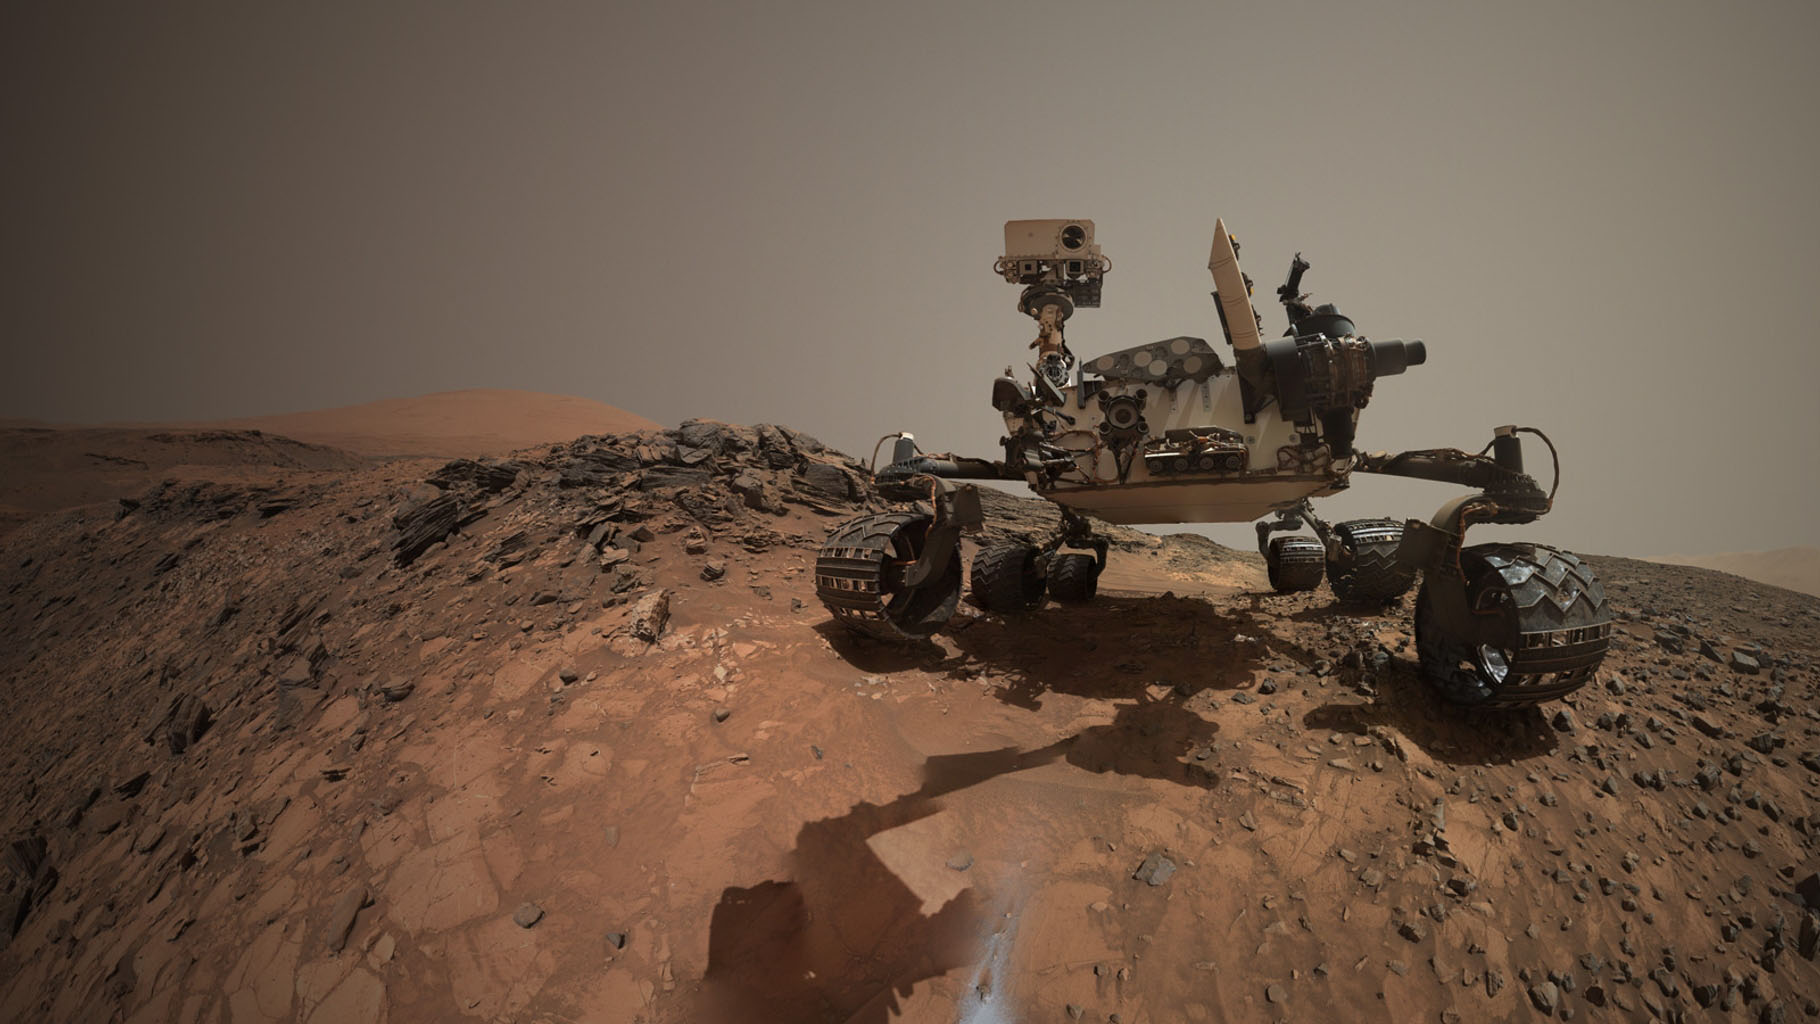 Mars Rover Curiosity Proves the Selfie Syndrome Has Reached    Mars Curiosity Selfie